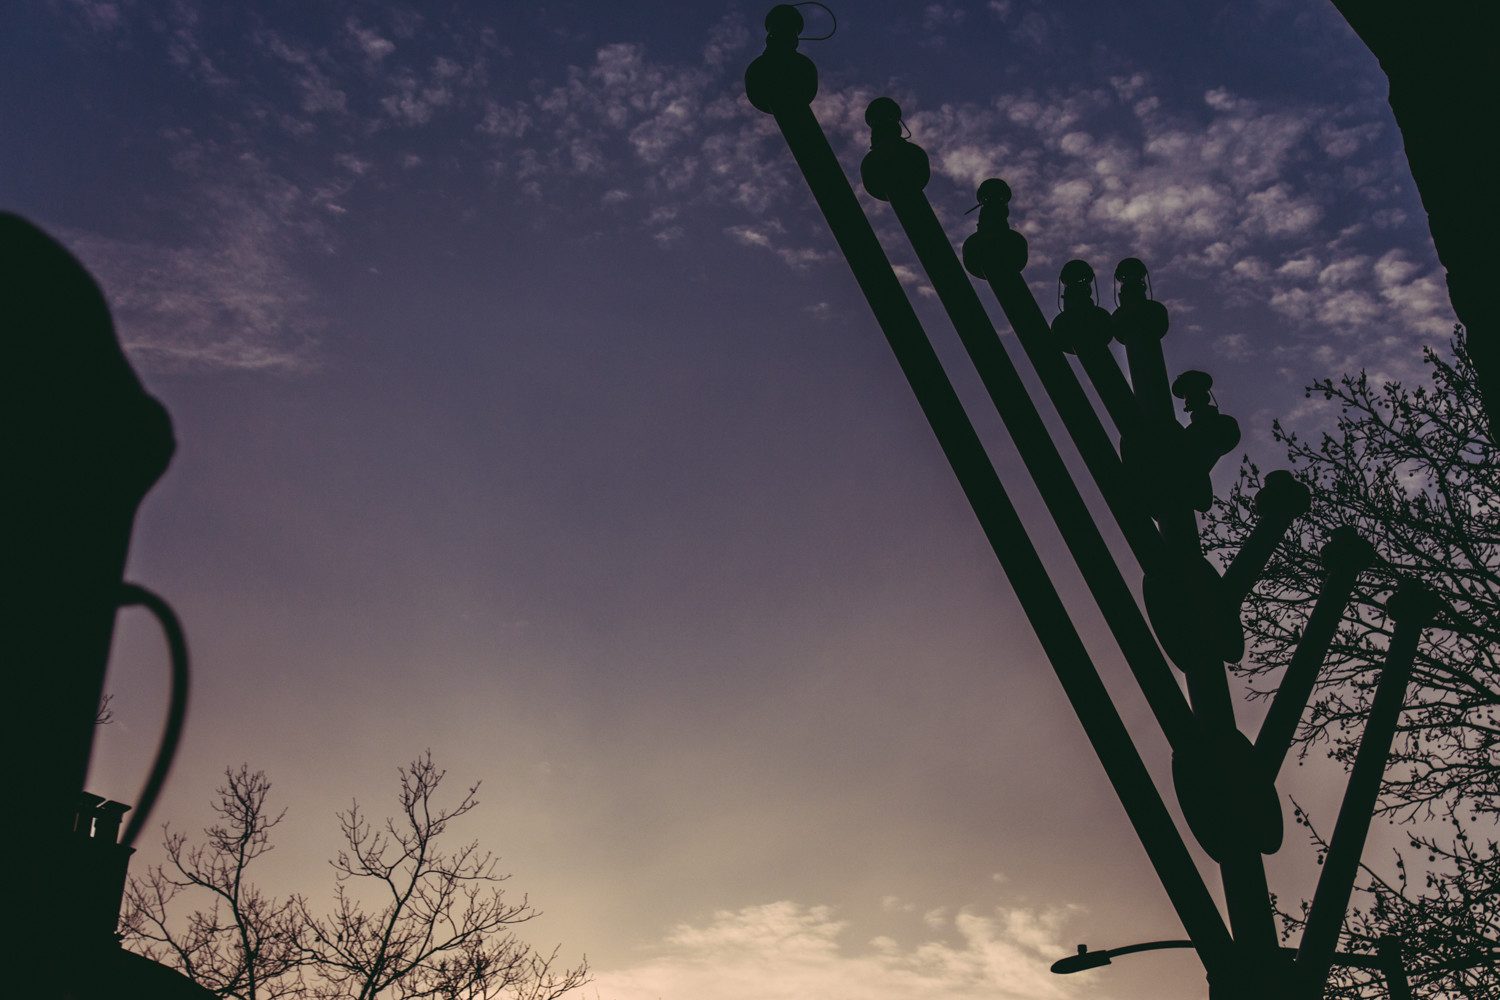 At 23 feet, the menorah at the Riverdale Monument — which stands unlit during sunset on Sunday — is the largest in the Bronx, according to Rabbi Levi Shemtov of Chabad Lubavitch of Riverdale.